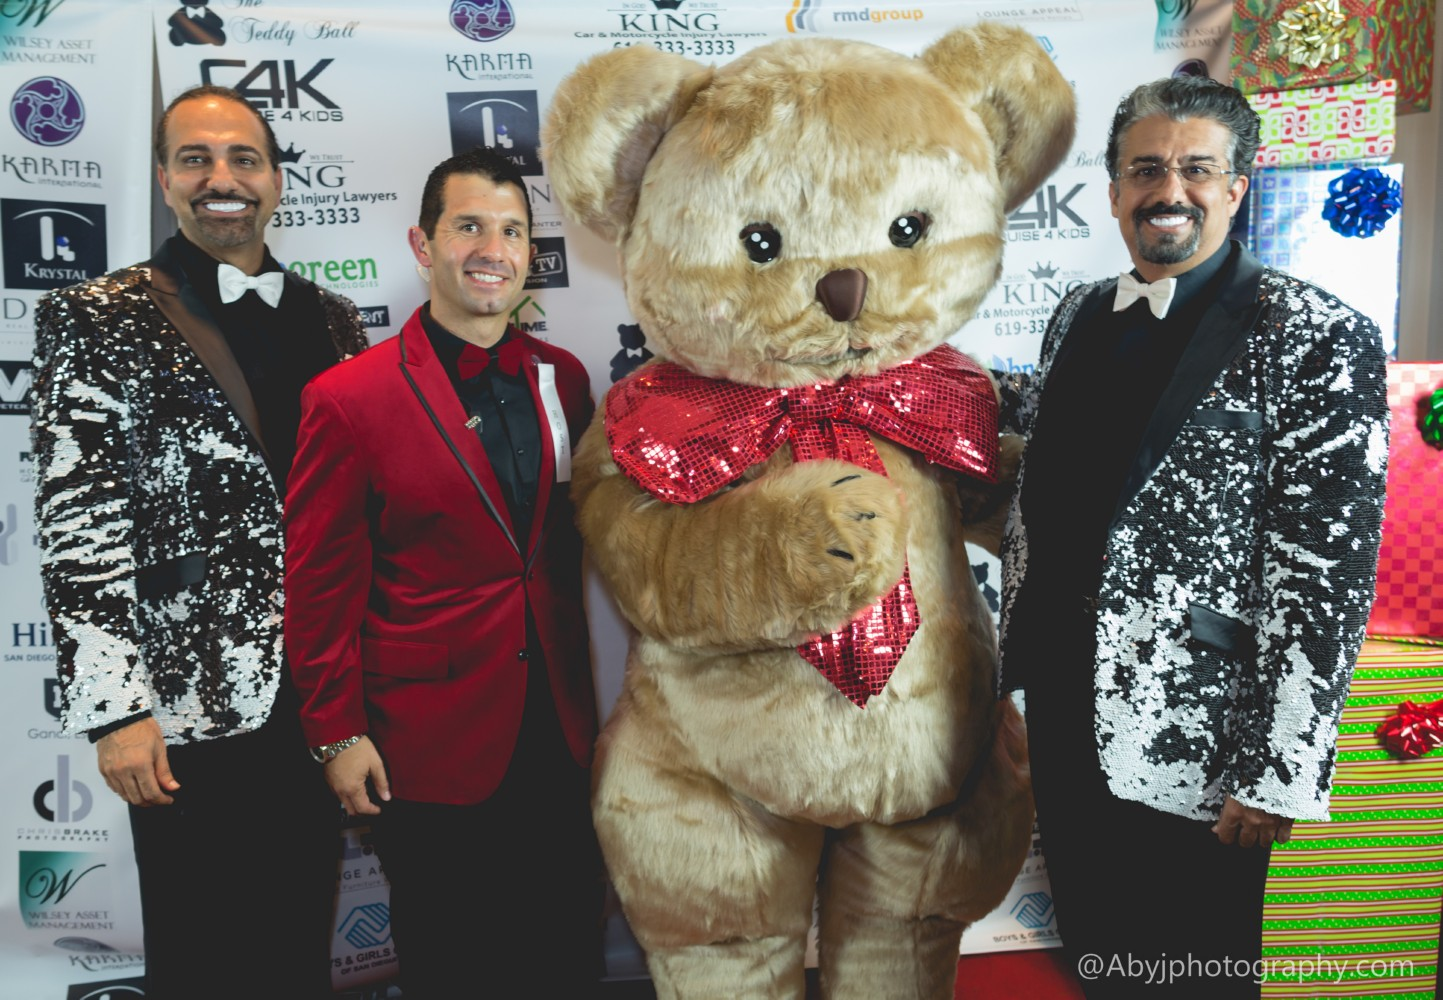 ABYJ_Photography_2016_Teddy_Ball - 107.jpg